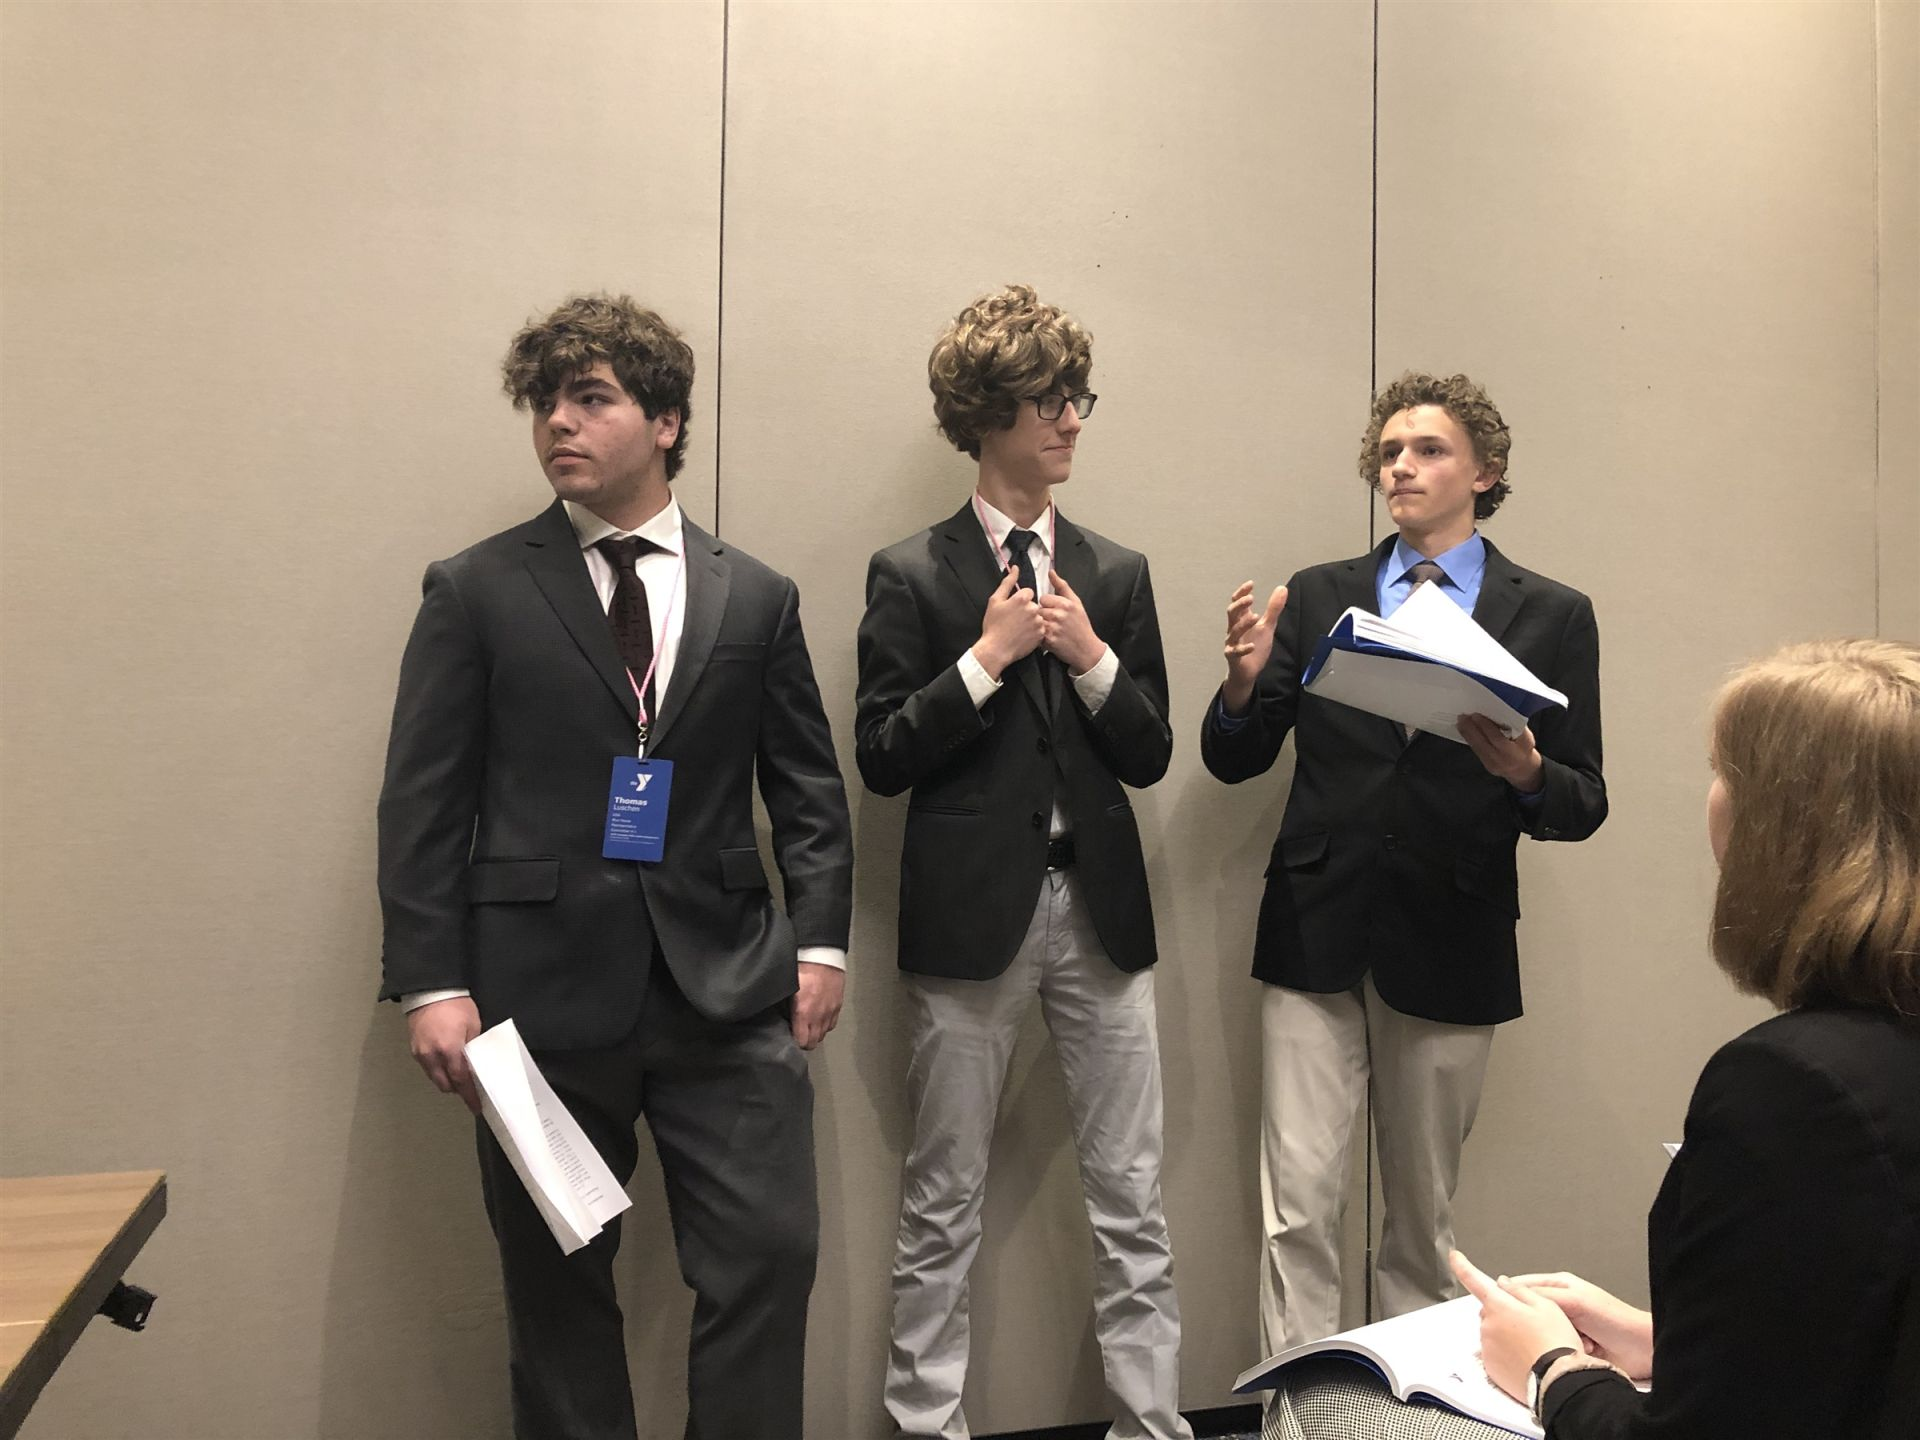 Thomas, Isaac, and Tate in committee